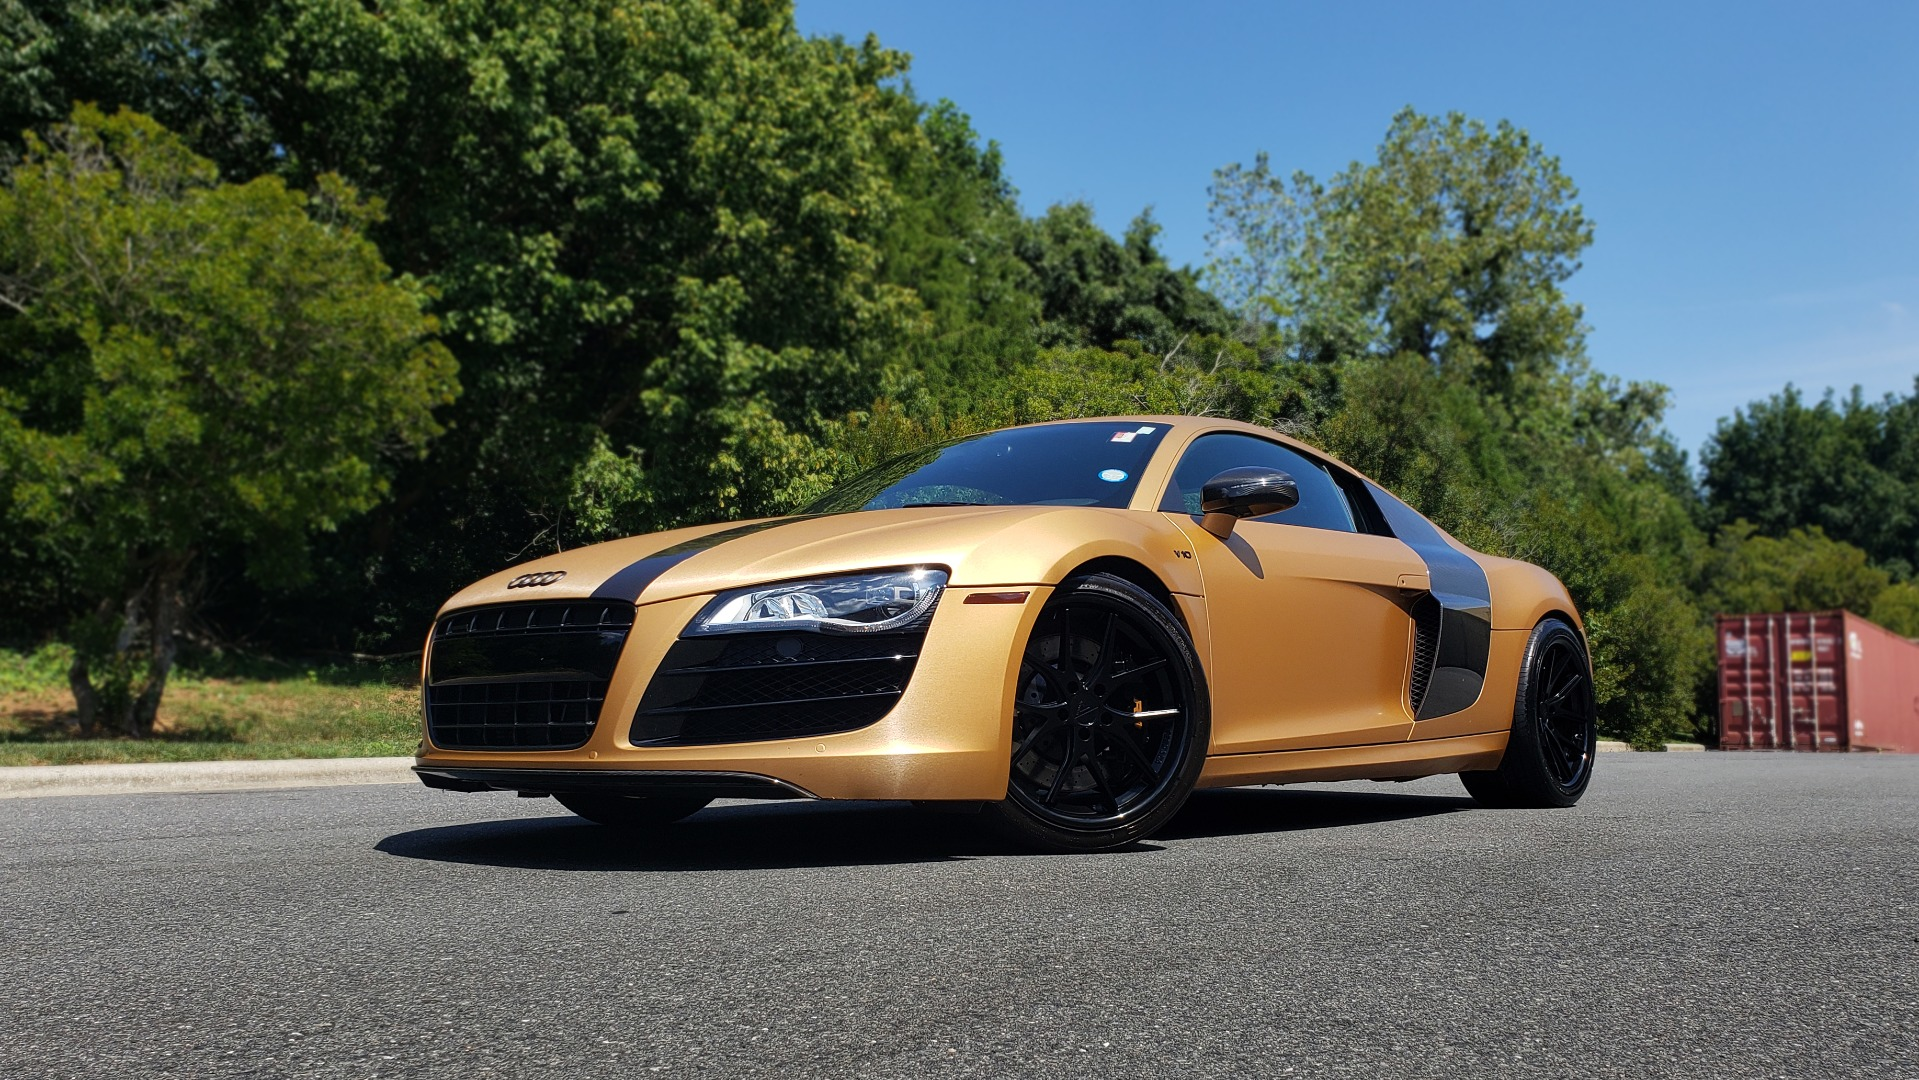 Used 2012 Audi R8 V10 5.2L / CUST WRAP BRUSHED BRONZE / NAV / B&O SOUND / CUST 19IN WHLS for sale $79,999 at Formula Imports in Charlotte NC 28227 1